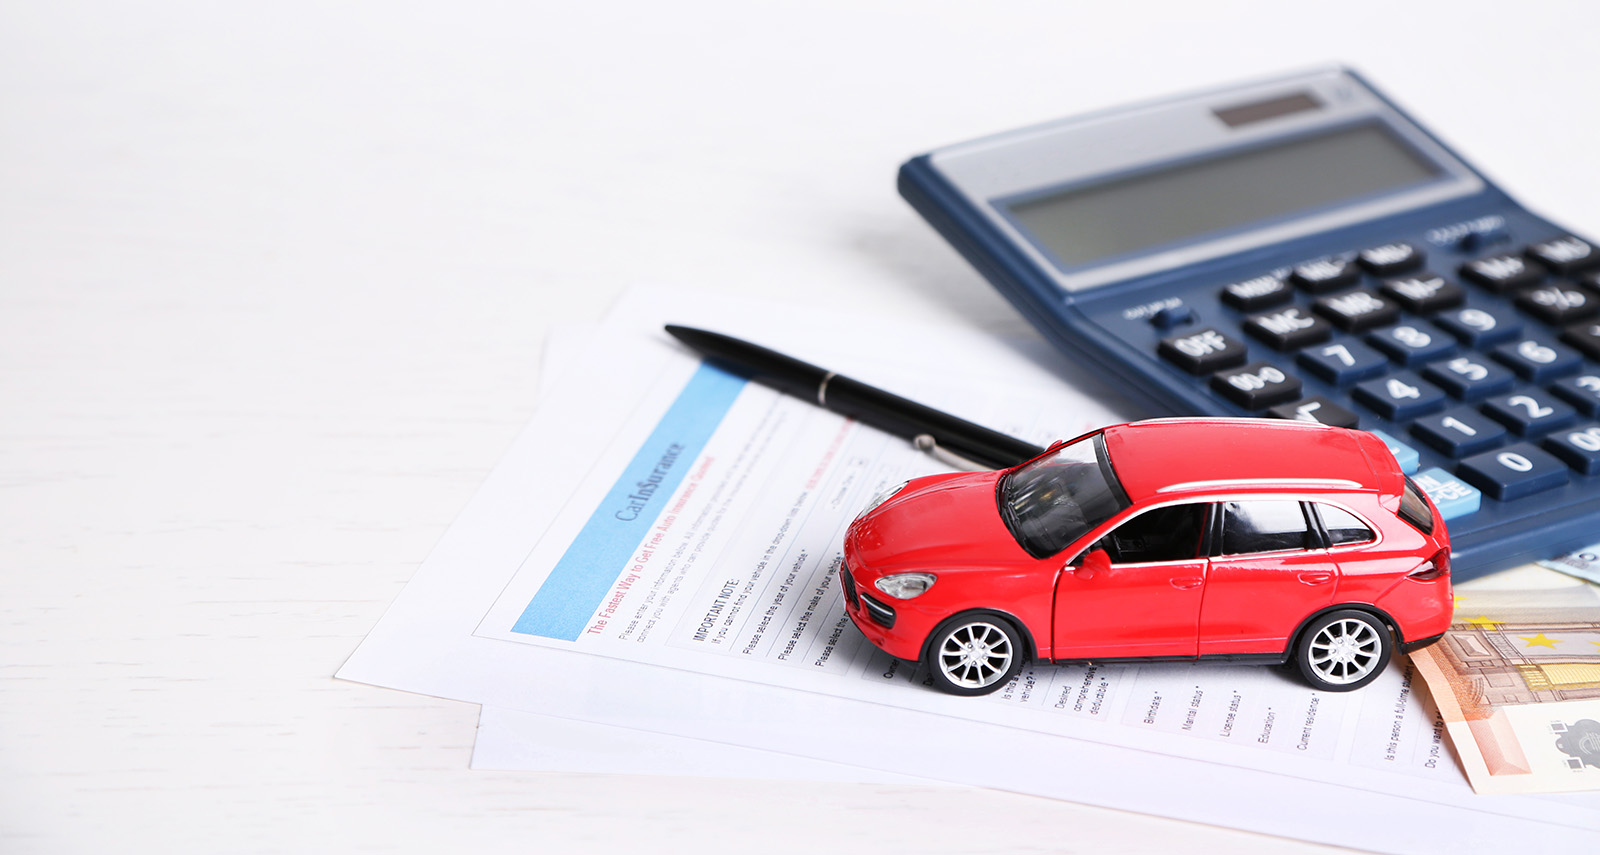 What happens to the Car Loan if the Applicant Passes Away?